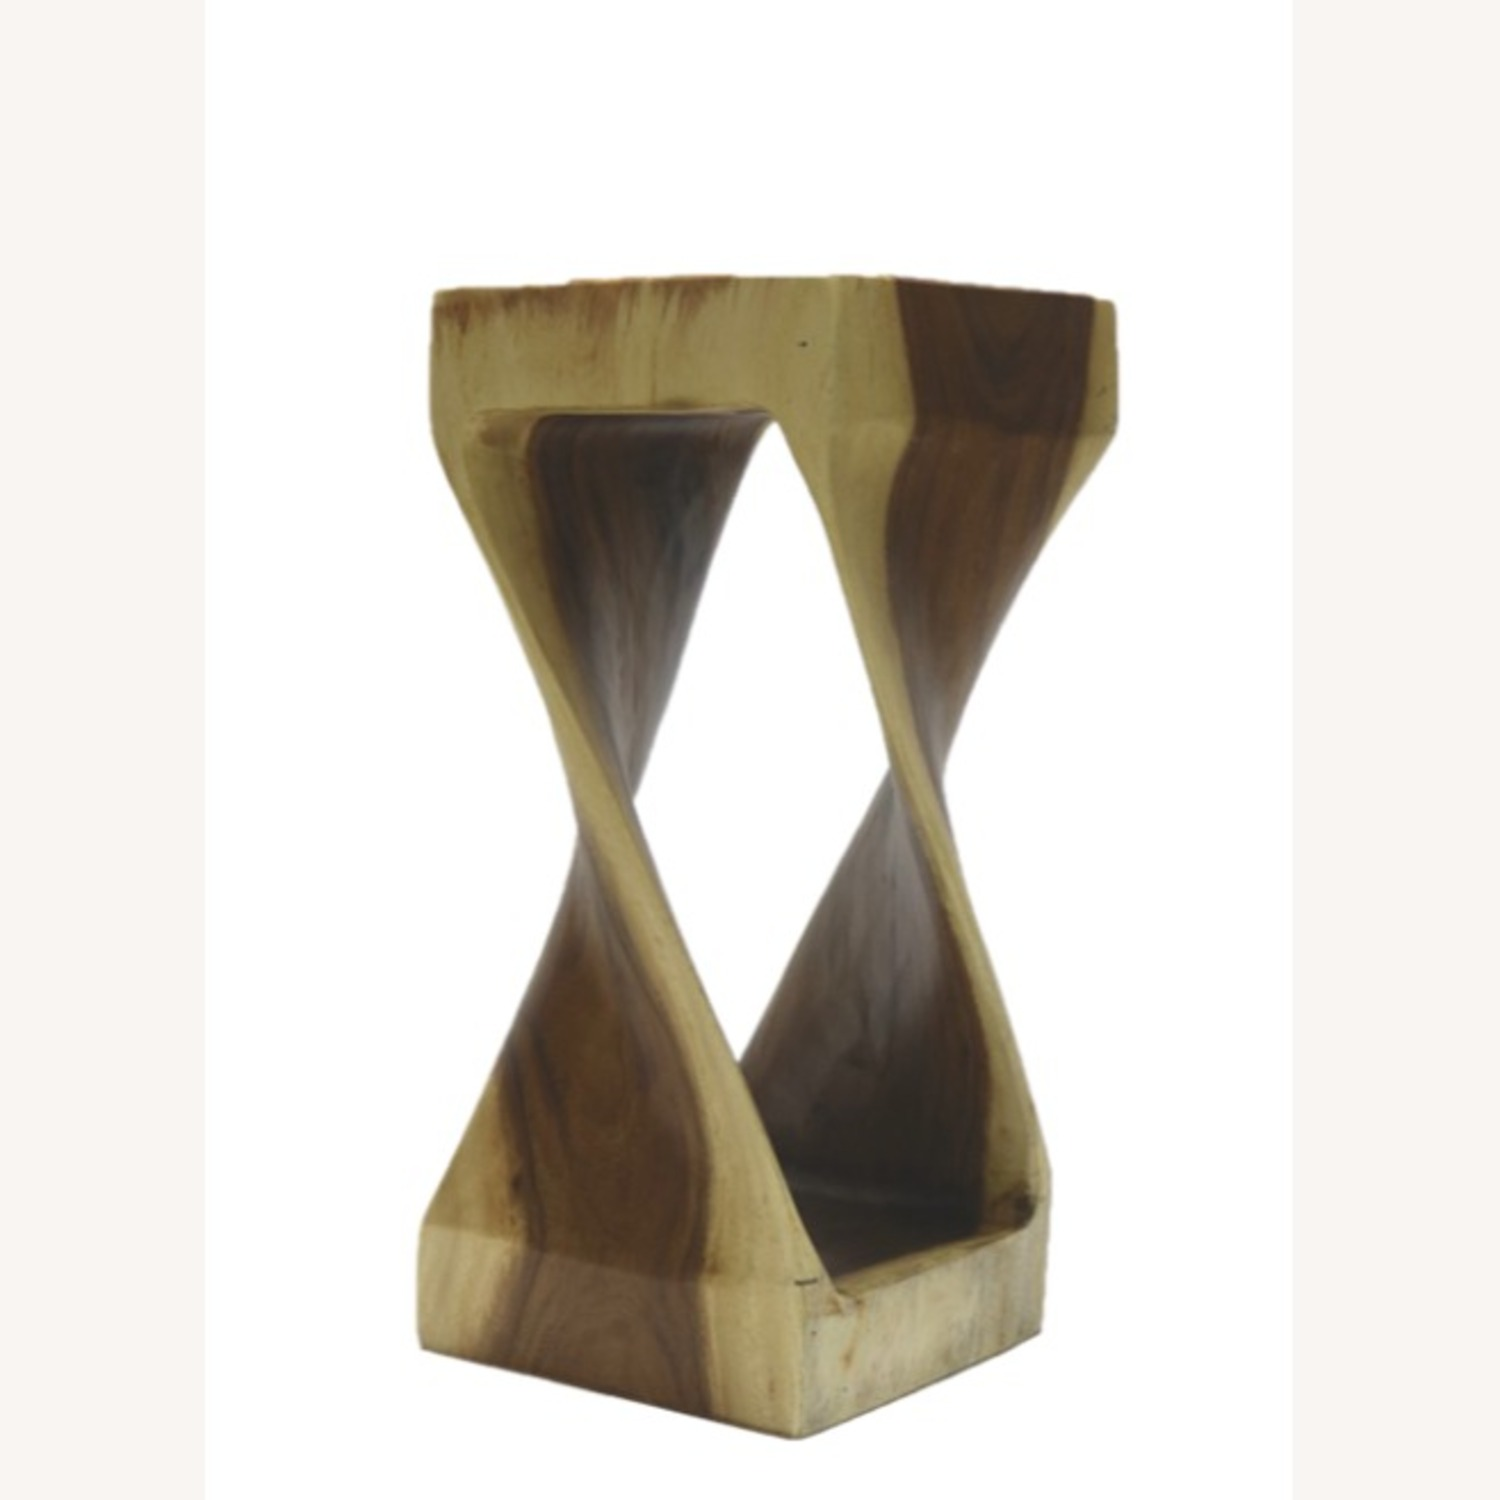 Counter Stool In Walnut Solid Wood Finish - image-0